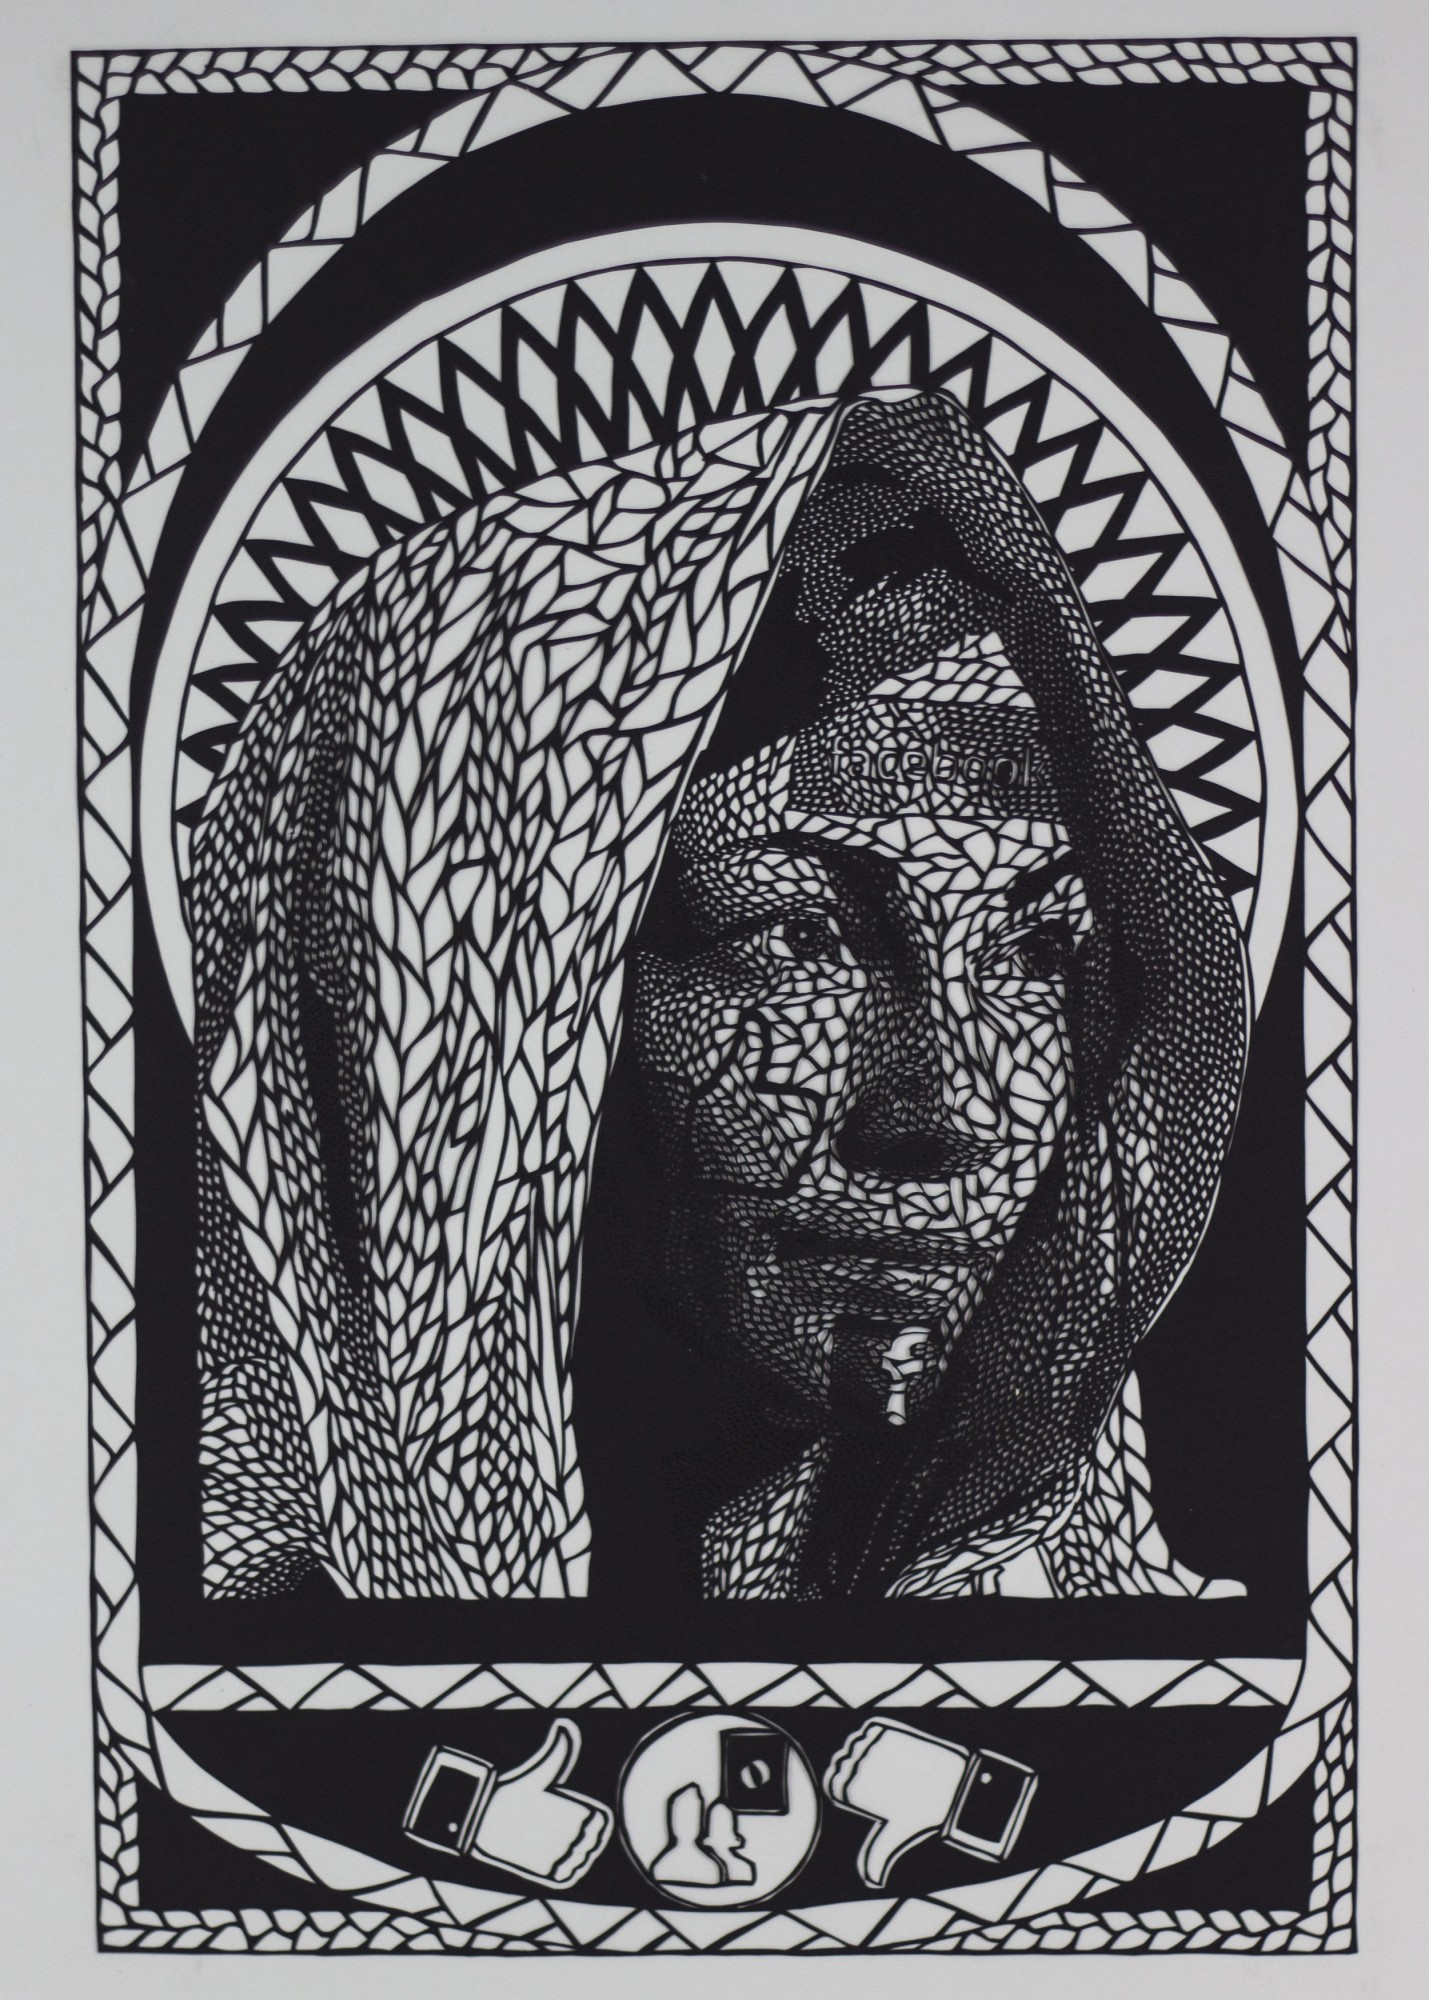 Intricate Paper Cut Social Media Iconography Meshed With Religious Art by Carlo Fantin - VIrgin 1